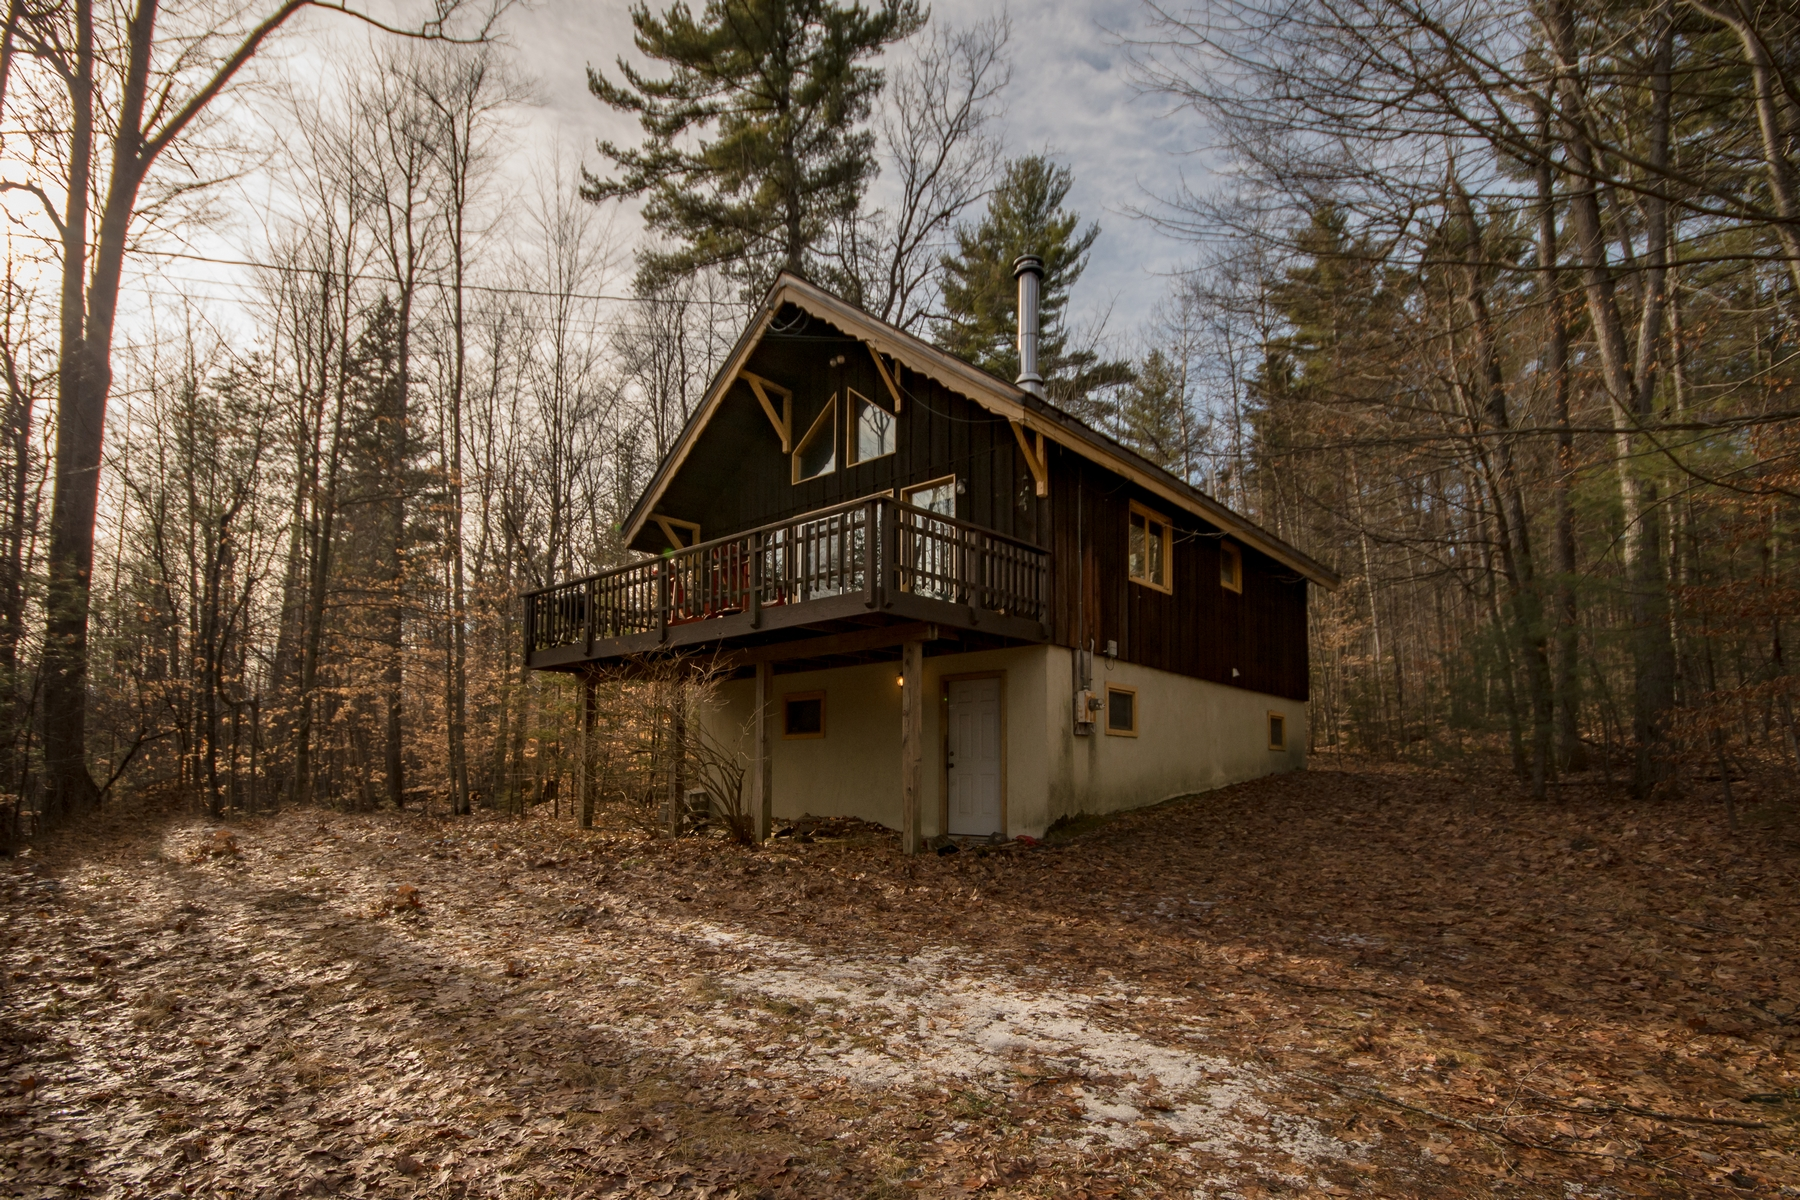 Single Family Home for Sale at Private Chalet 28 Ash Lane Jay, New York 12941 United States